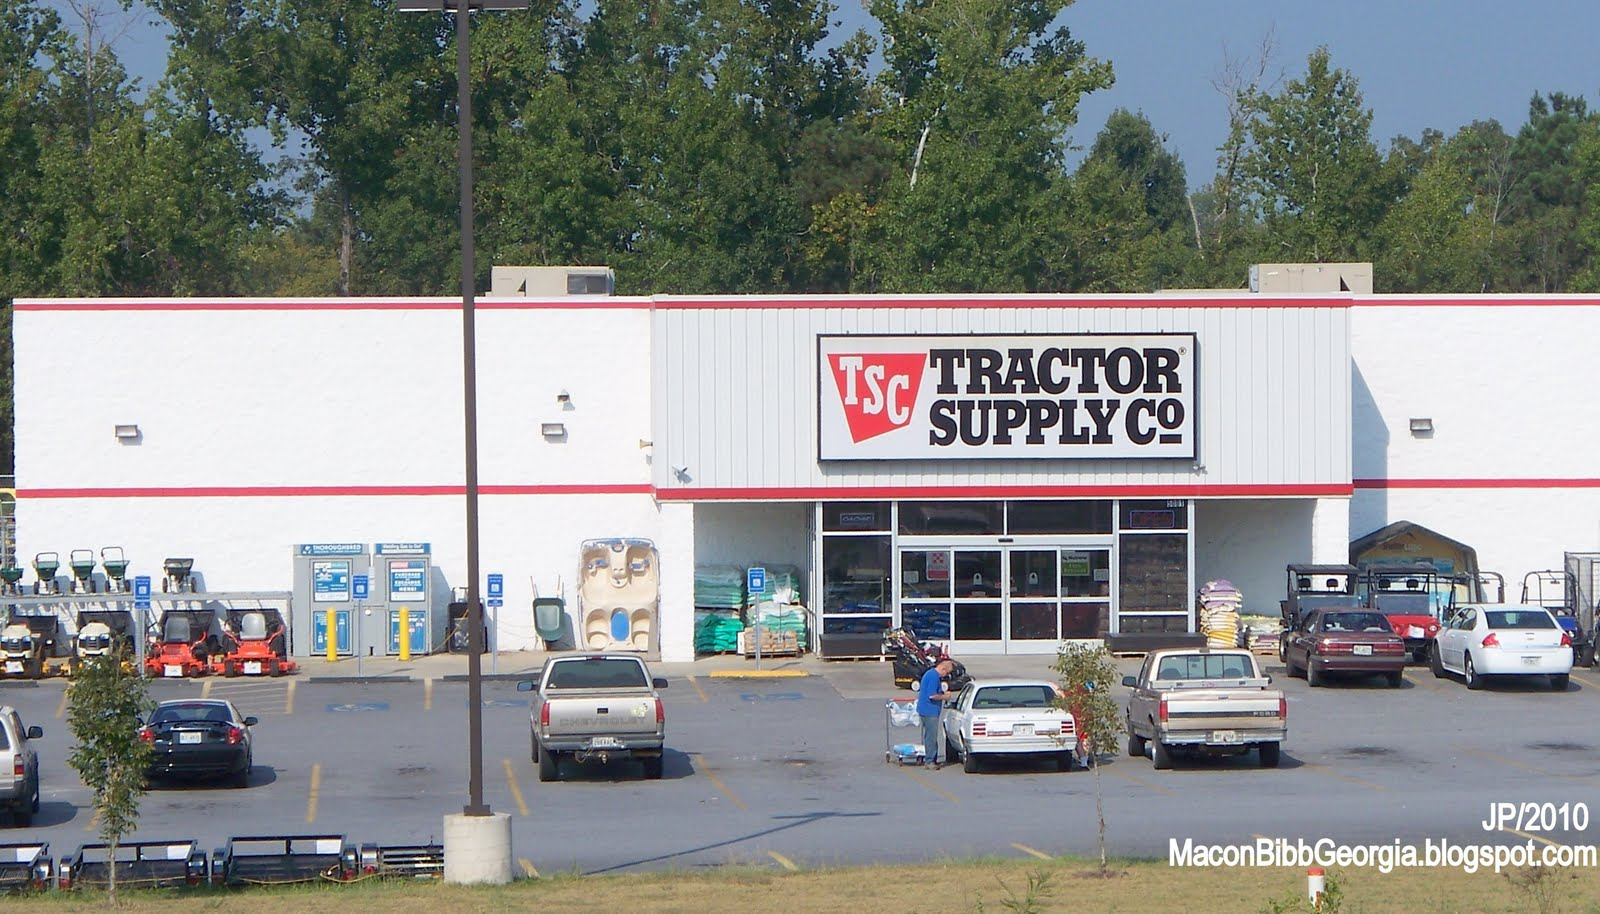 Tractor Supply Co. is the source for farm supplies, pet and animal feed and supplies, clothing, tools, fencing, and so much more. Buy online and pick up in store is available at most locations. Tractor Supply Co. is your source for the Life Out Here lifestyle!